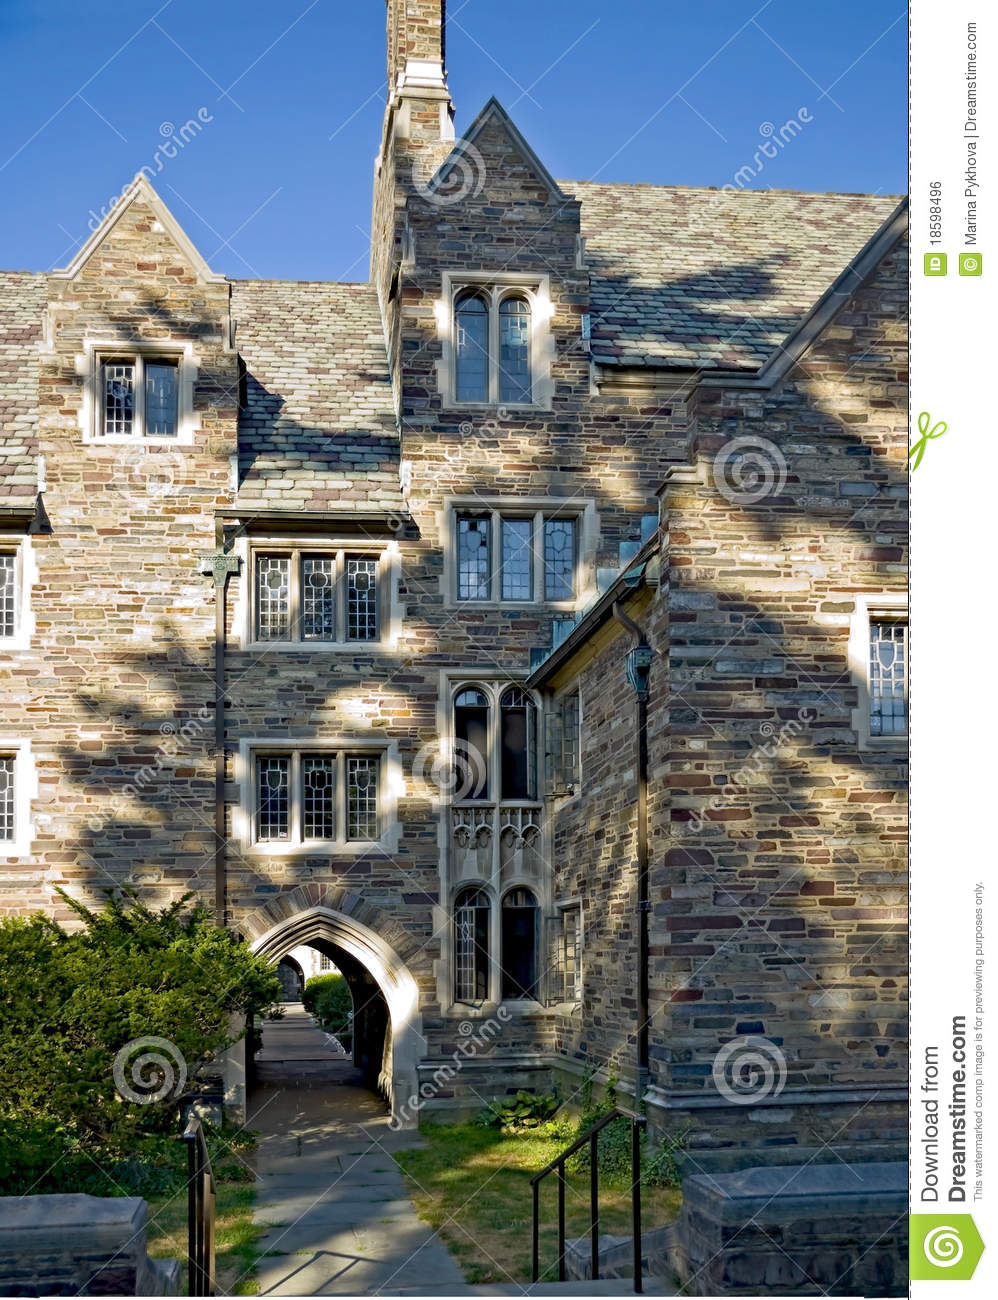 Old house in princeton royalty free stock image image for The princeton house